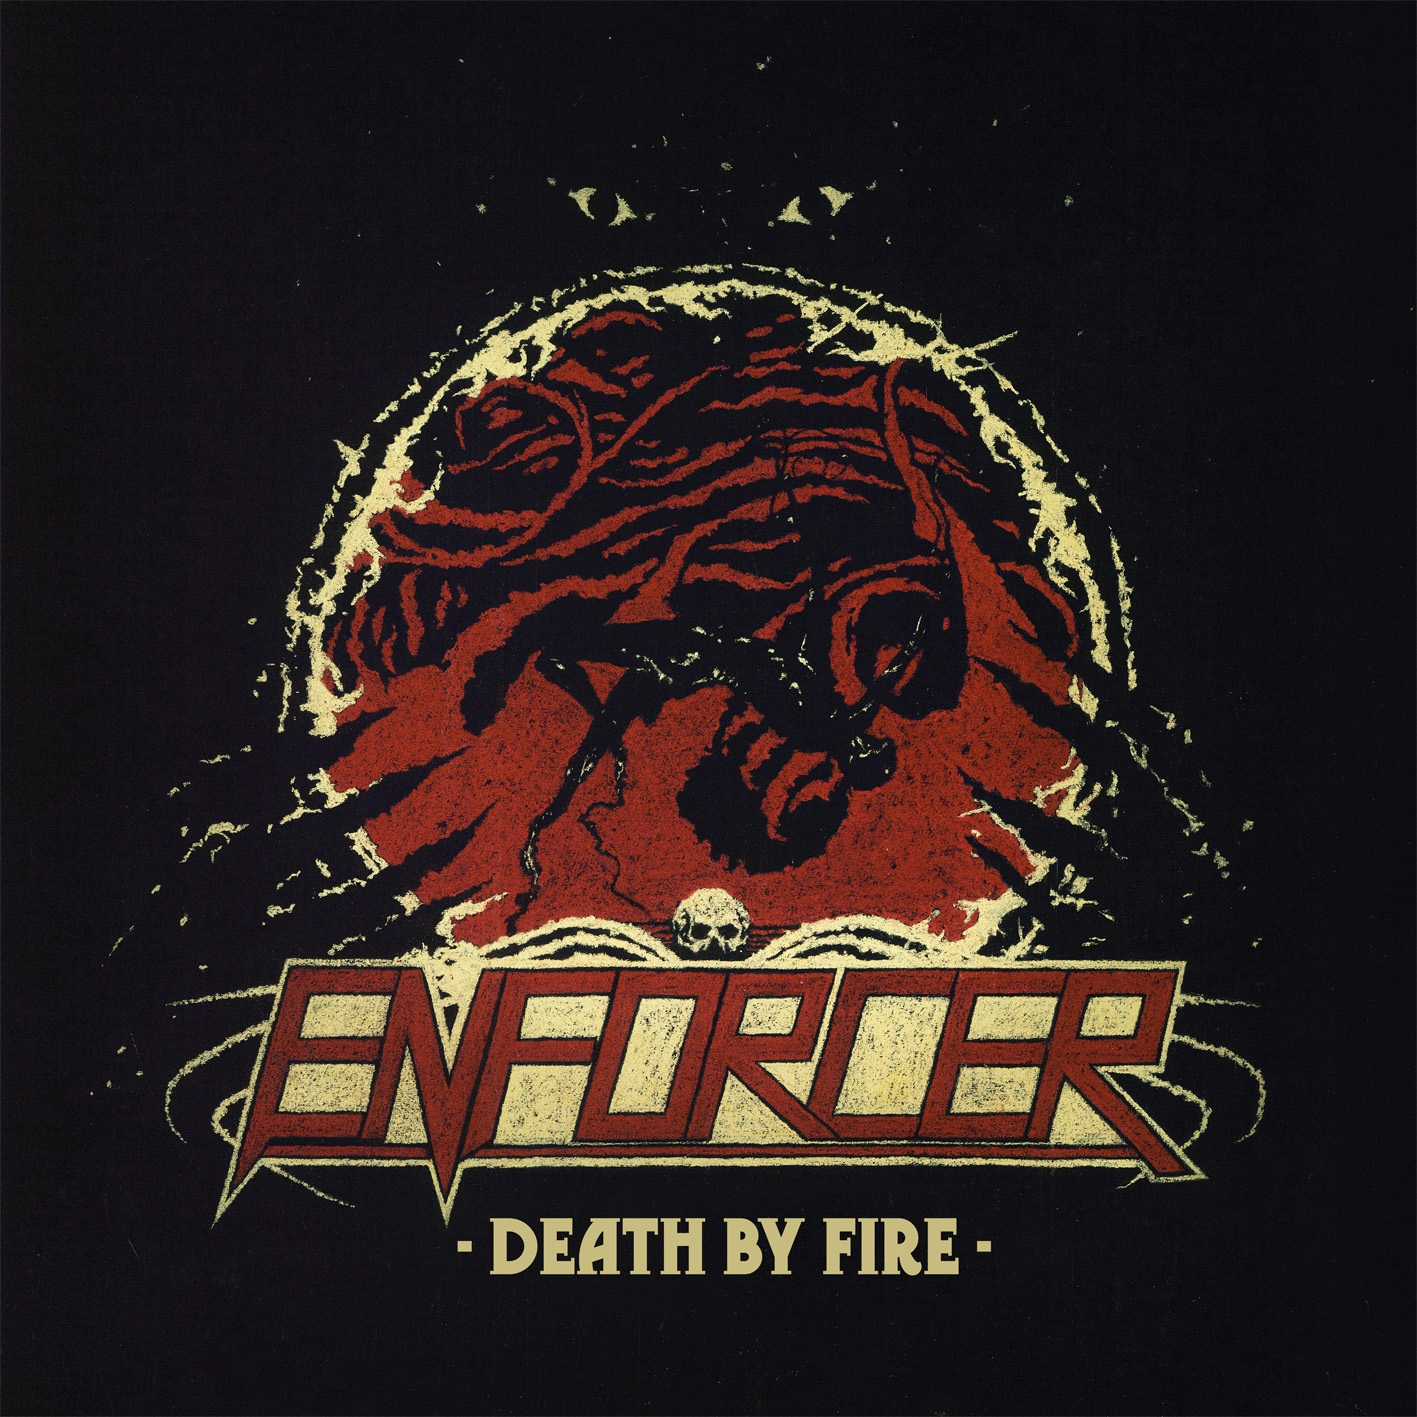 Enforcer album cover